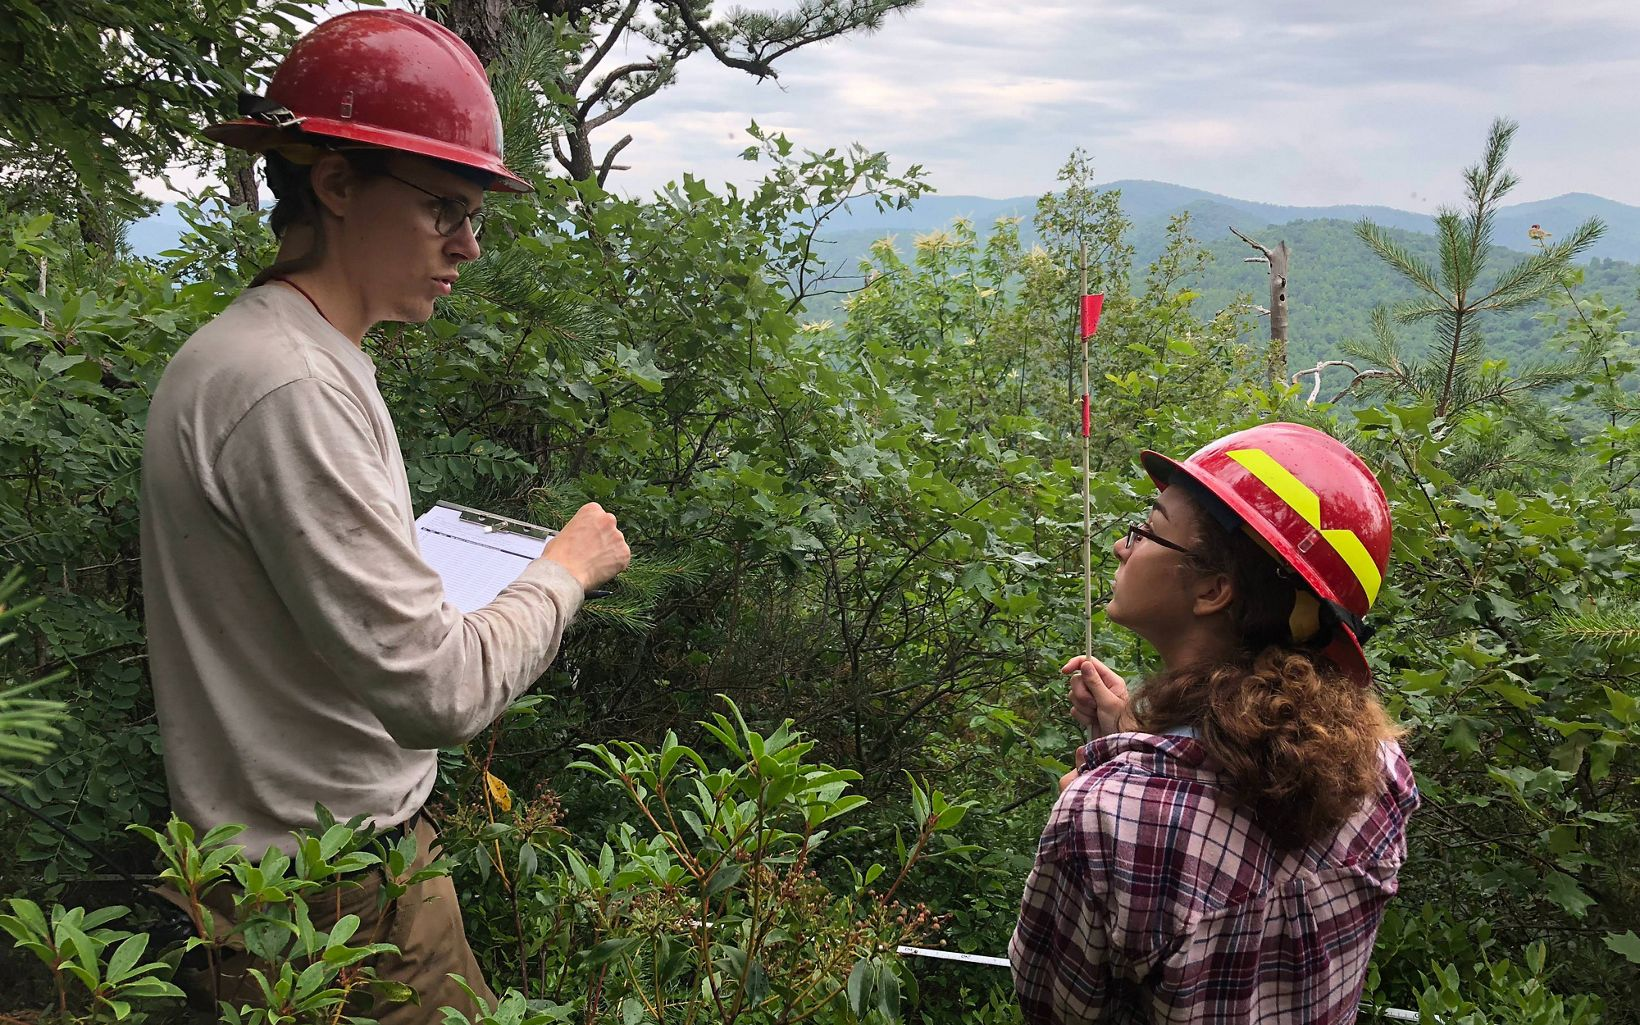 Two people wearing red hardhat stand in a green thicket counting stems of young pine trees at a study site.